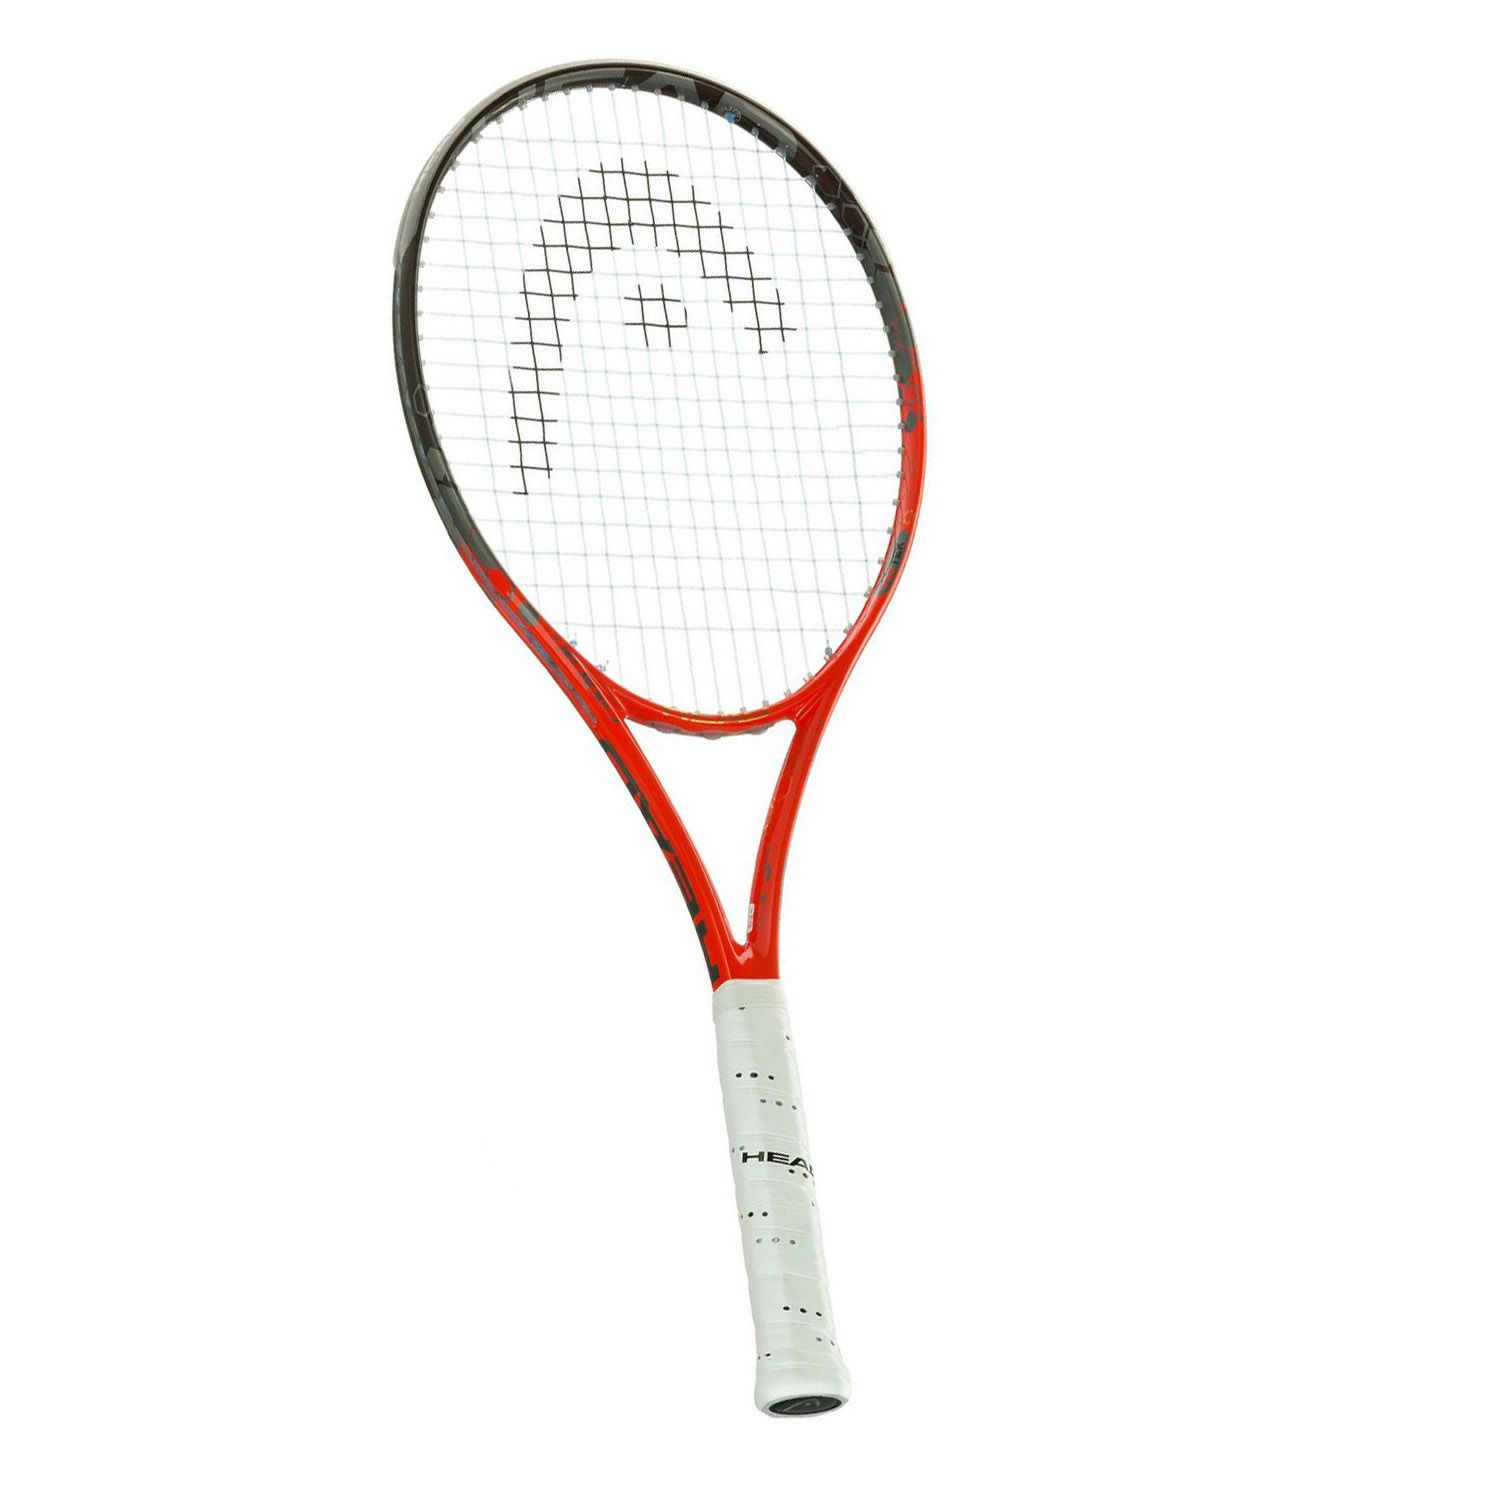 tennis racket Best selection and lowest prices on all tennis rackets including babolat, wilson,  prince, head, yonex, dunlop, volkl & more ✓ demo service, try before you buy.